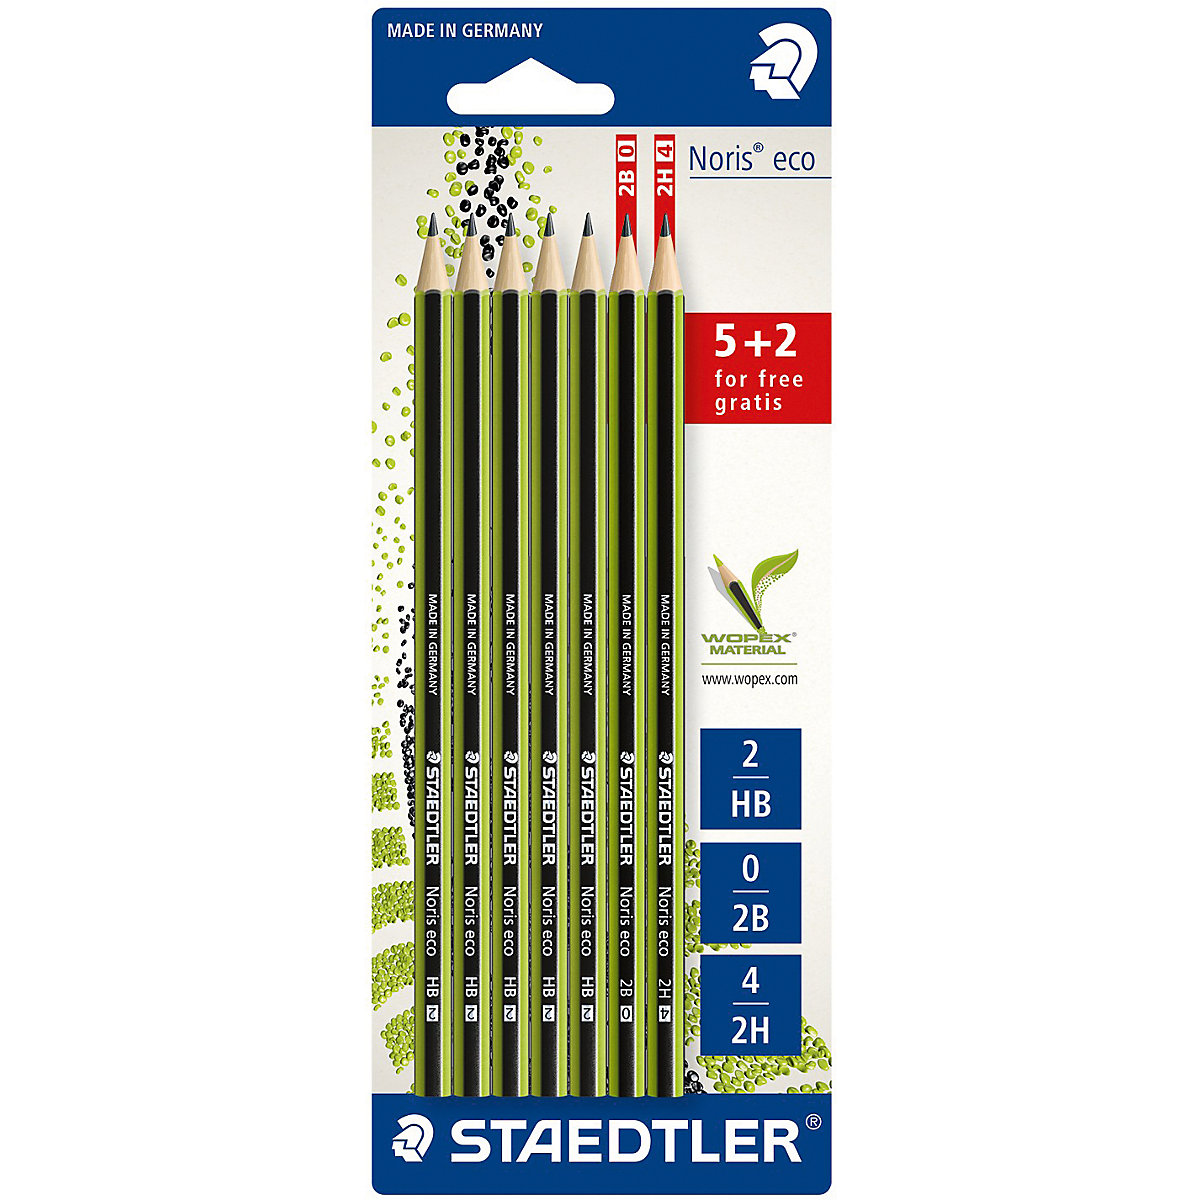 STAEDTLER Wooden Colored Pencils 7379429 colored pencil for boys and girls children sets black graphite MTpromo